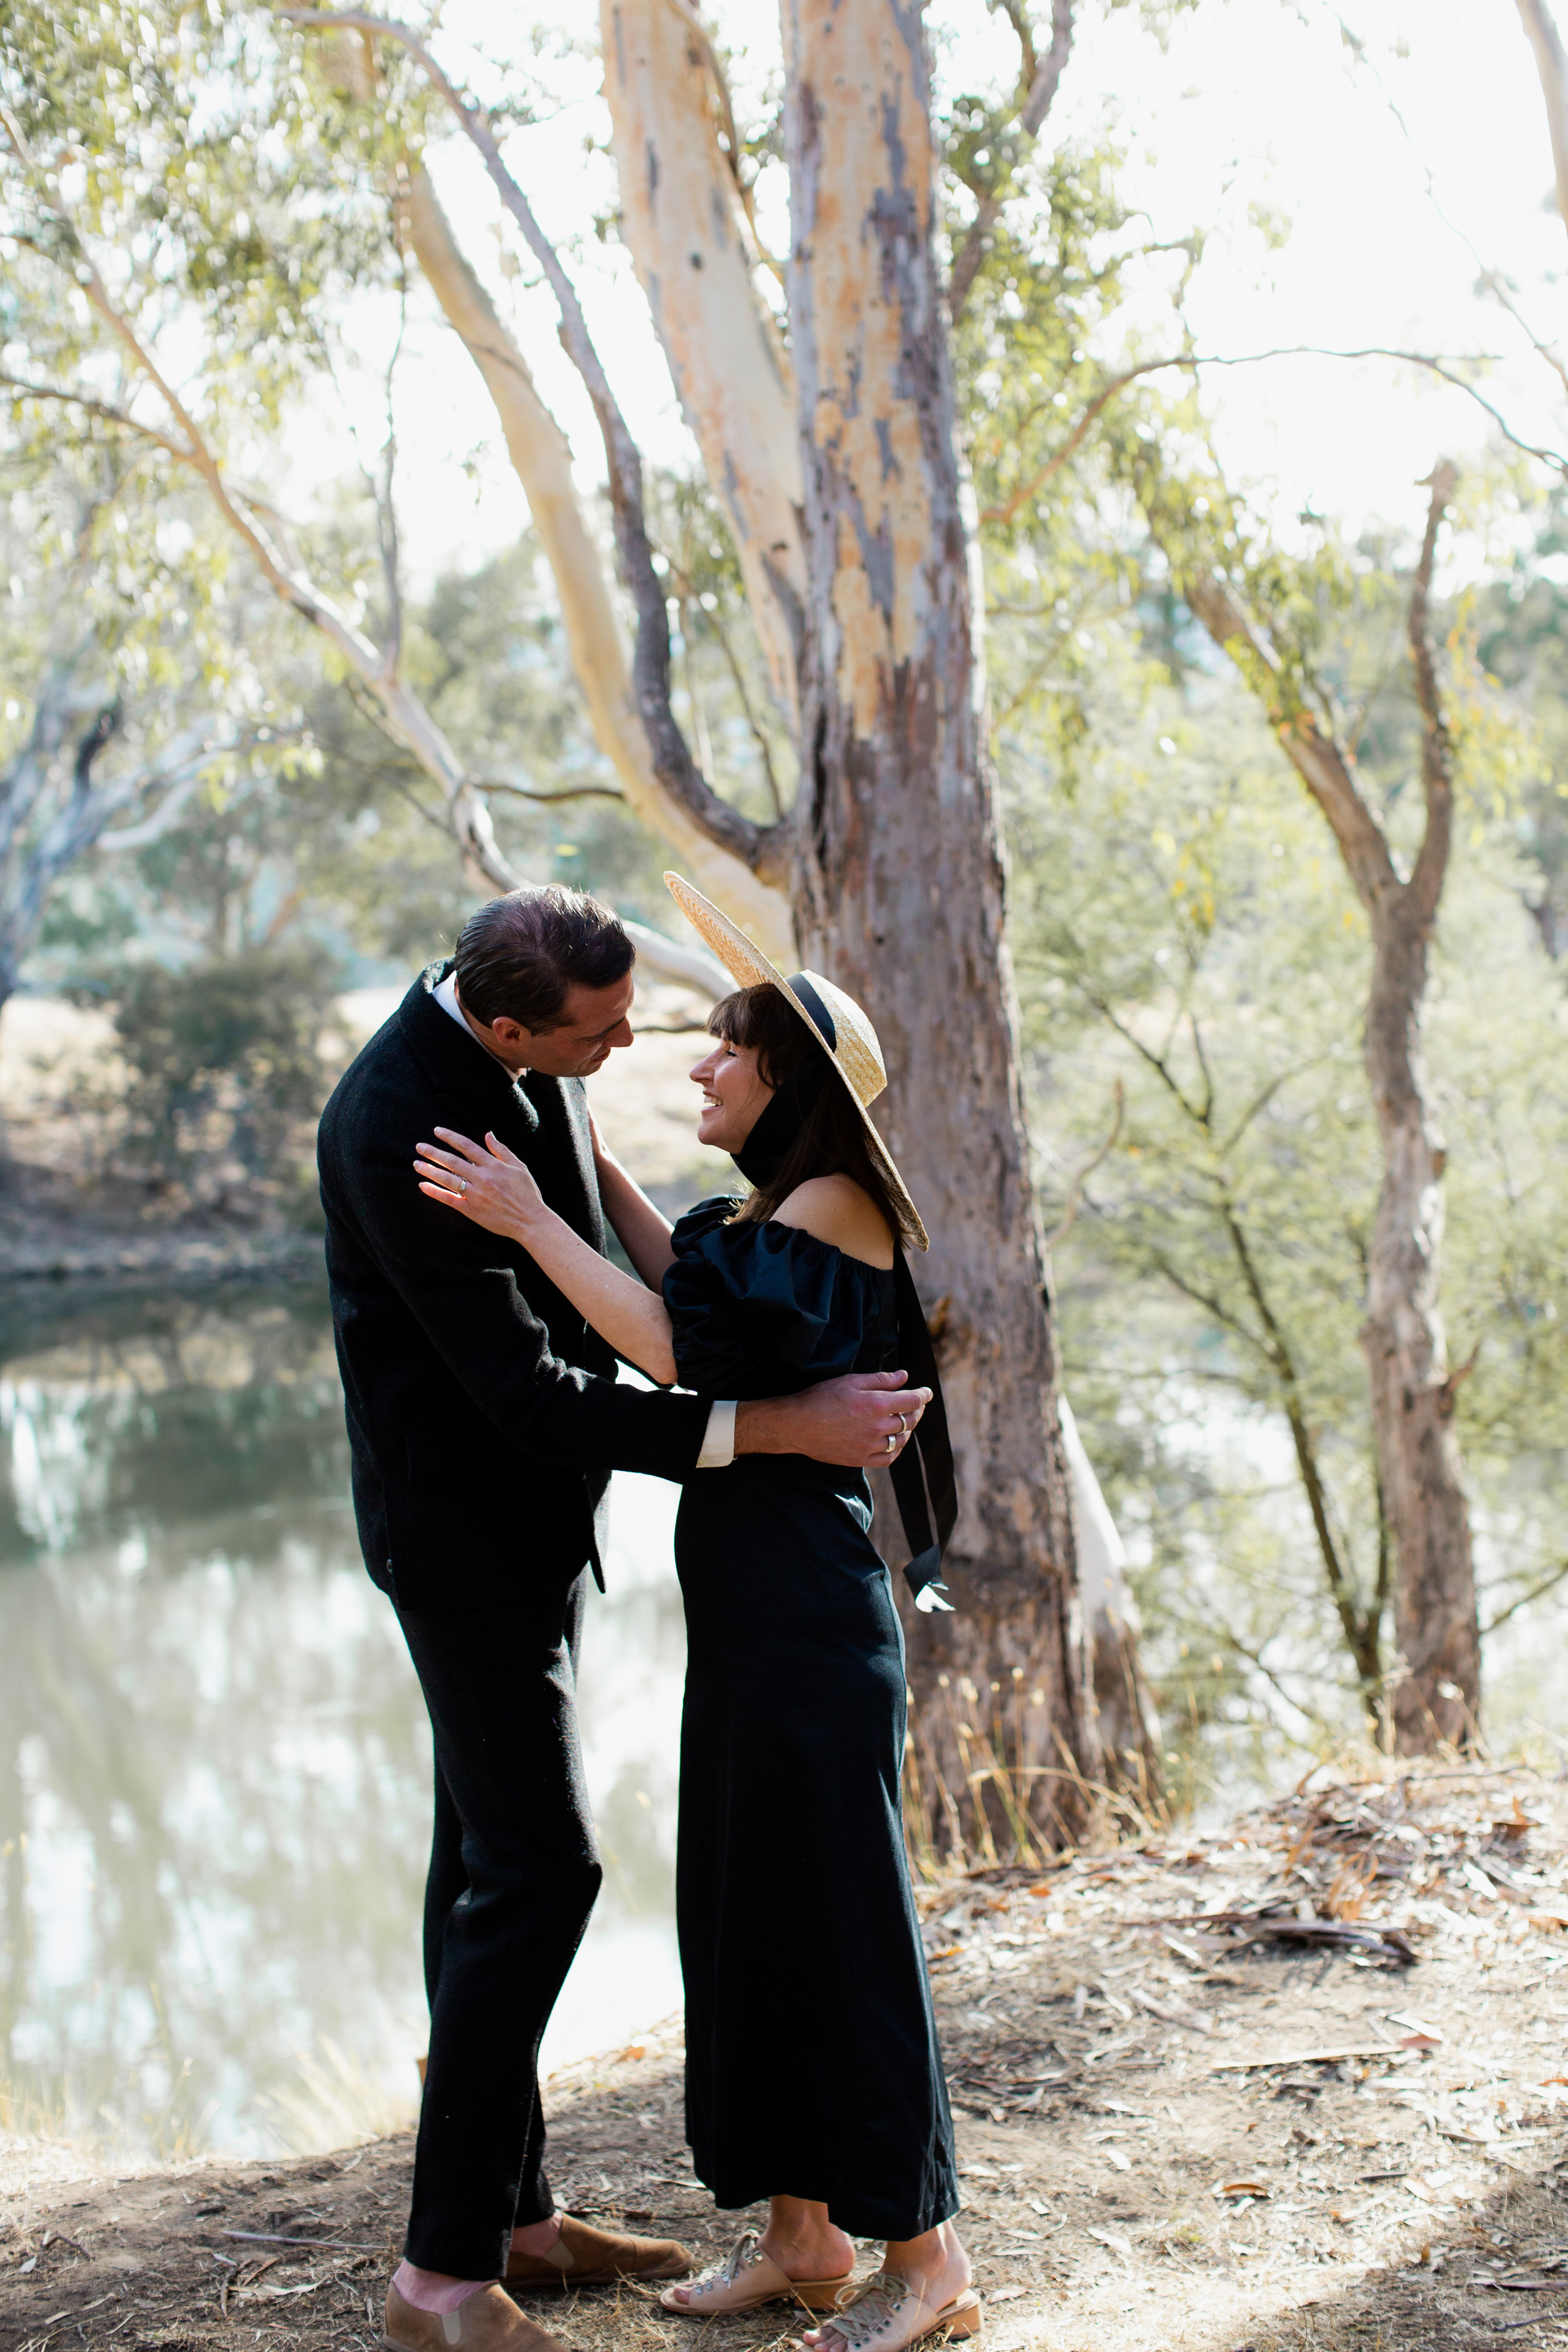 I-Got-You-Babe-Weddings-Claire-Dave-Trawol-VIC-Country-Property-Wedding124.JPG